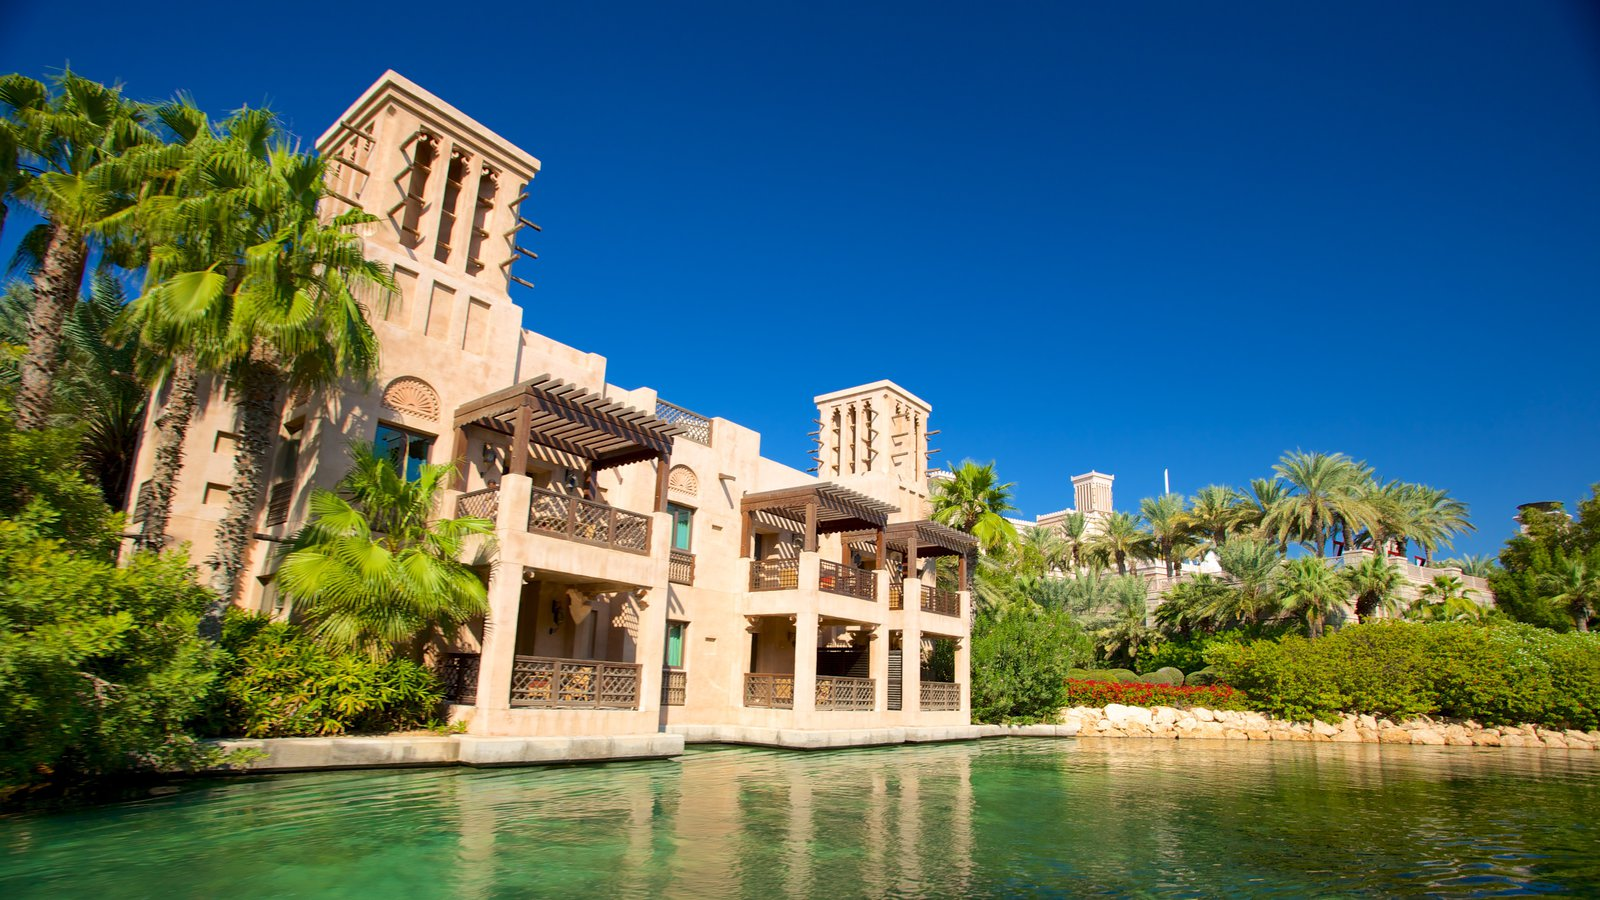 Souk Madinat Jumeirah showing tropical scenes, a pond and a house